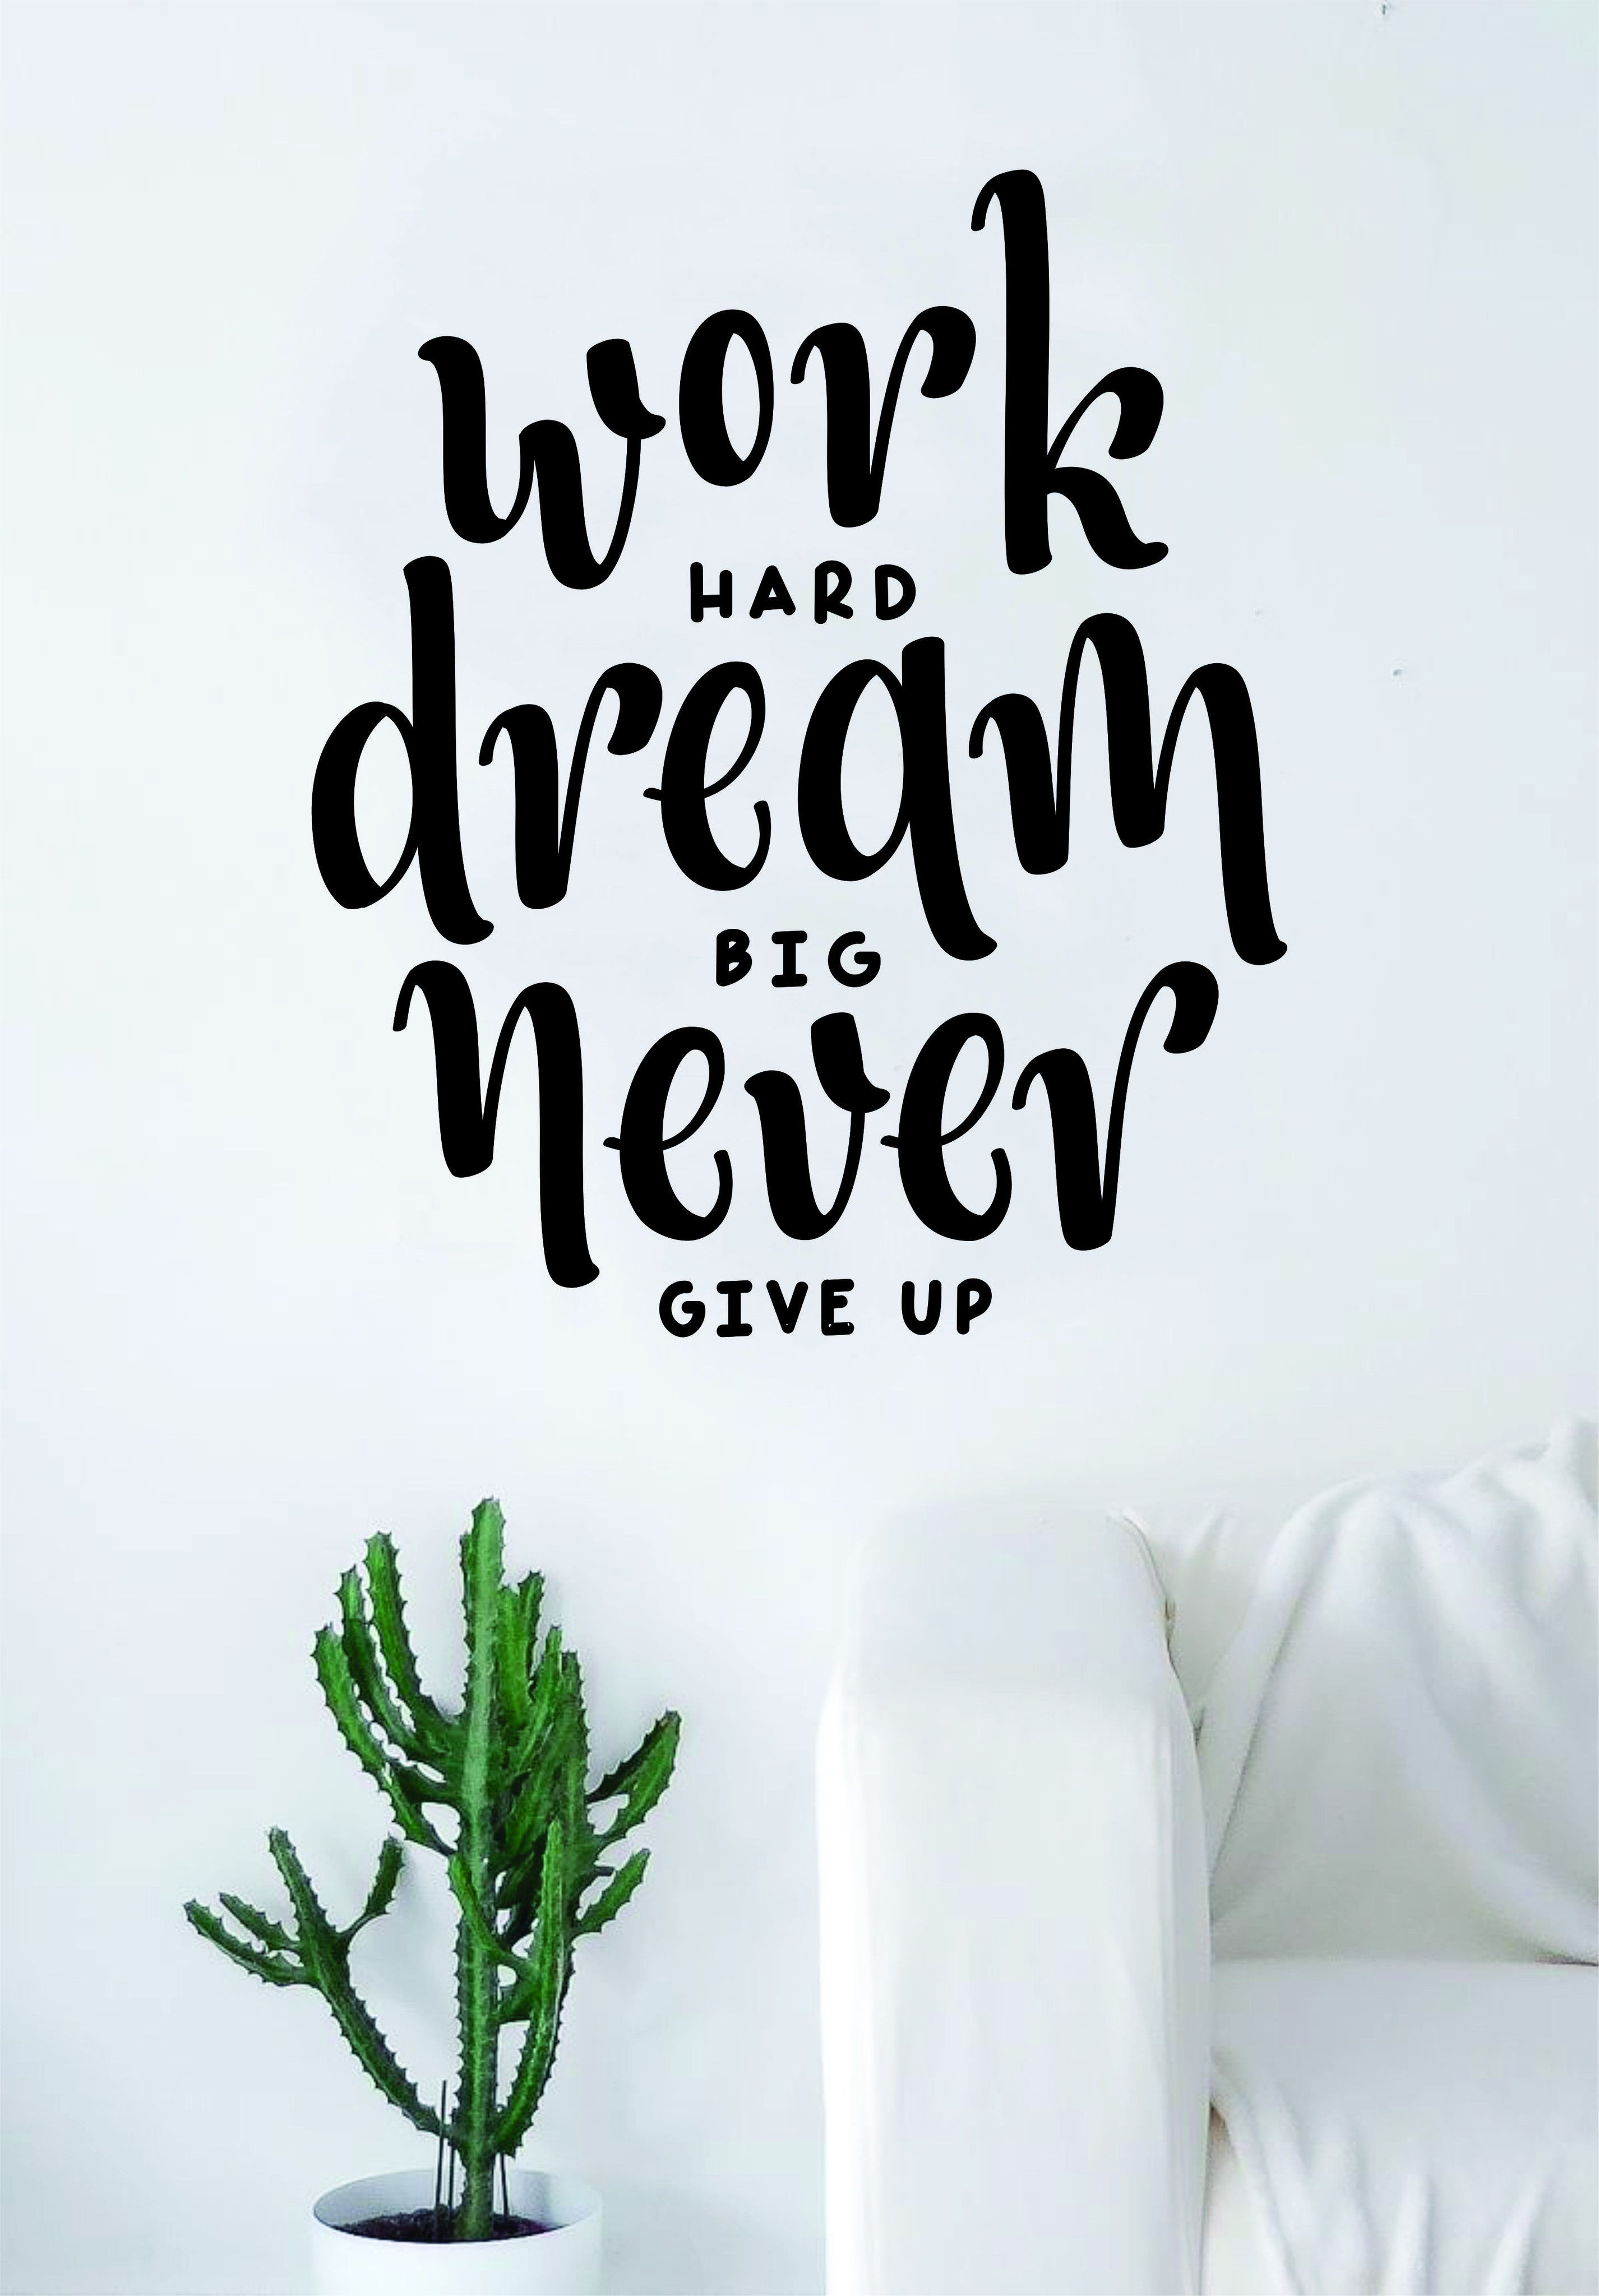 Work hard dream big never give up quote wall decal sticker bedroom